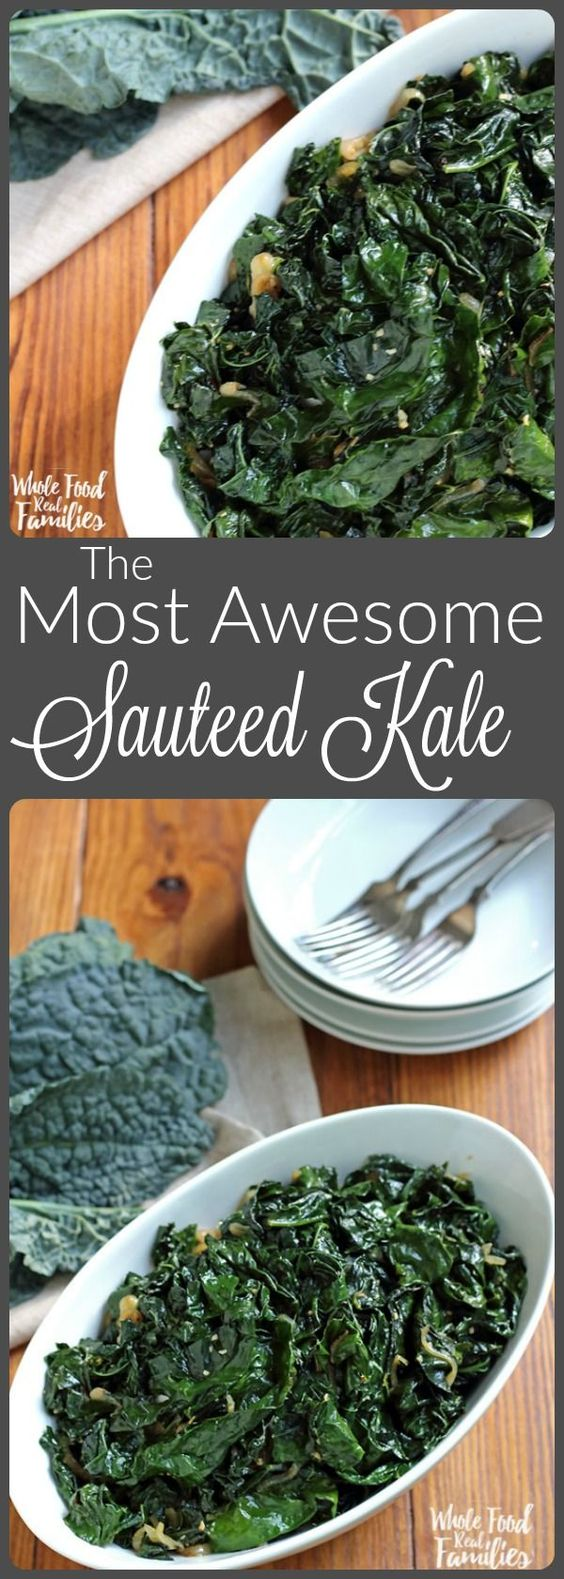 The Most Awesome Sauteed Kale